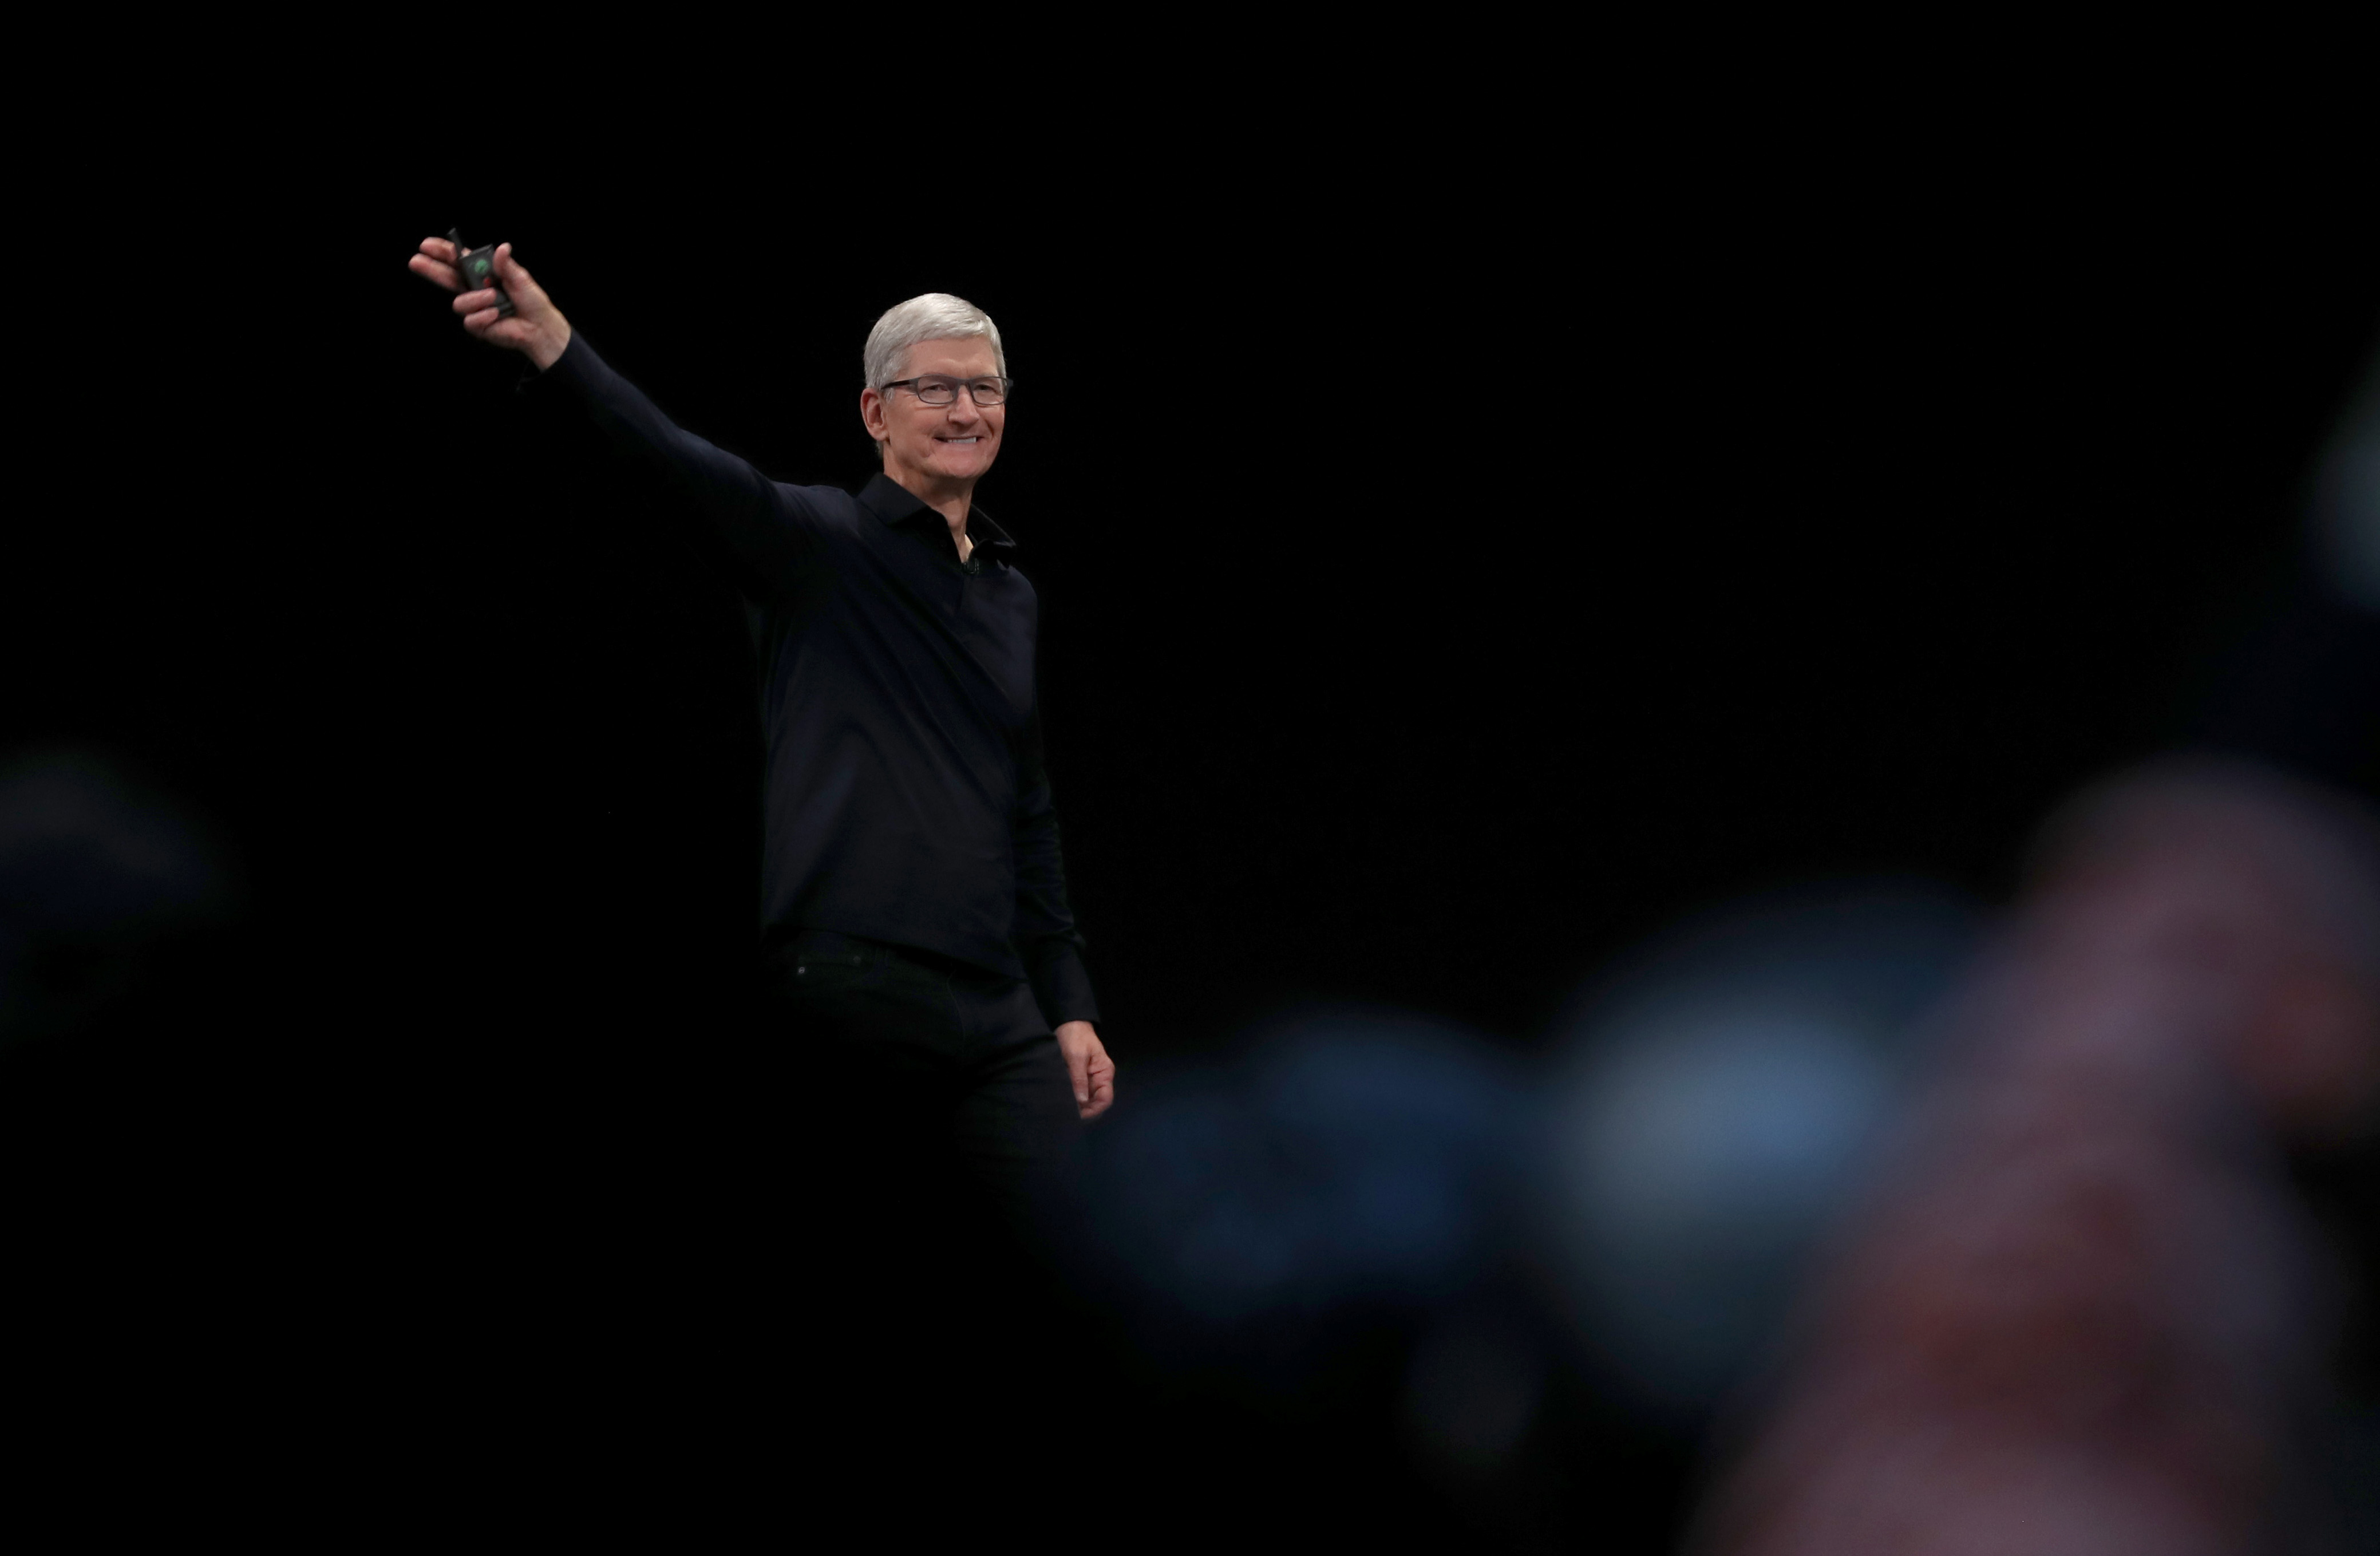 Apple CEO Tim Cook delivers the keynote address during the 2019 Apple Worldwide Developer Conference (WWDC) at the San Jose Convention Center on June 03, 2019 in San Jose, California.